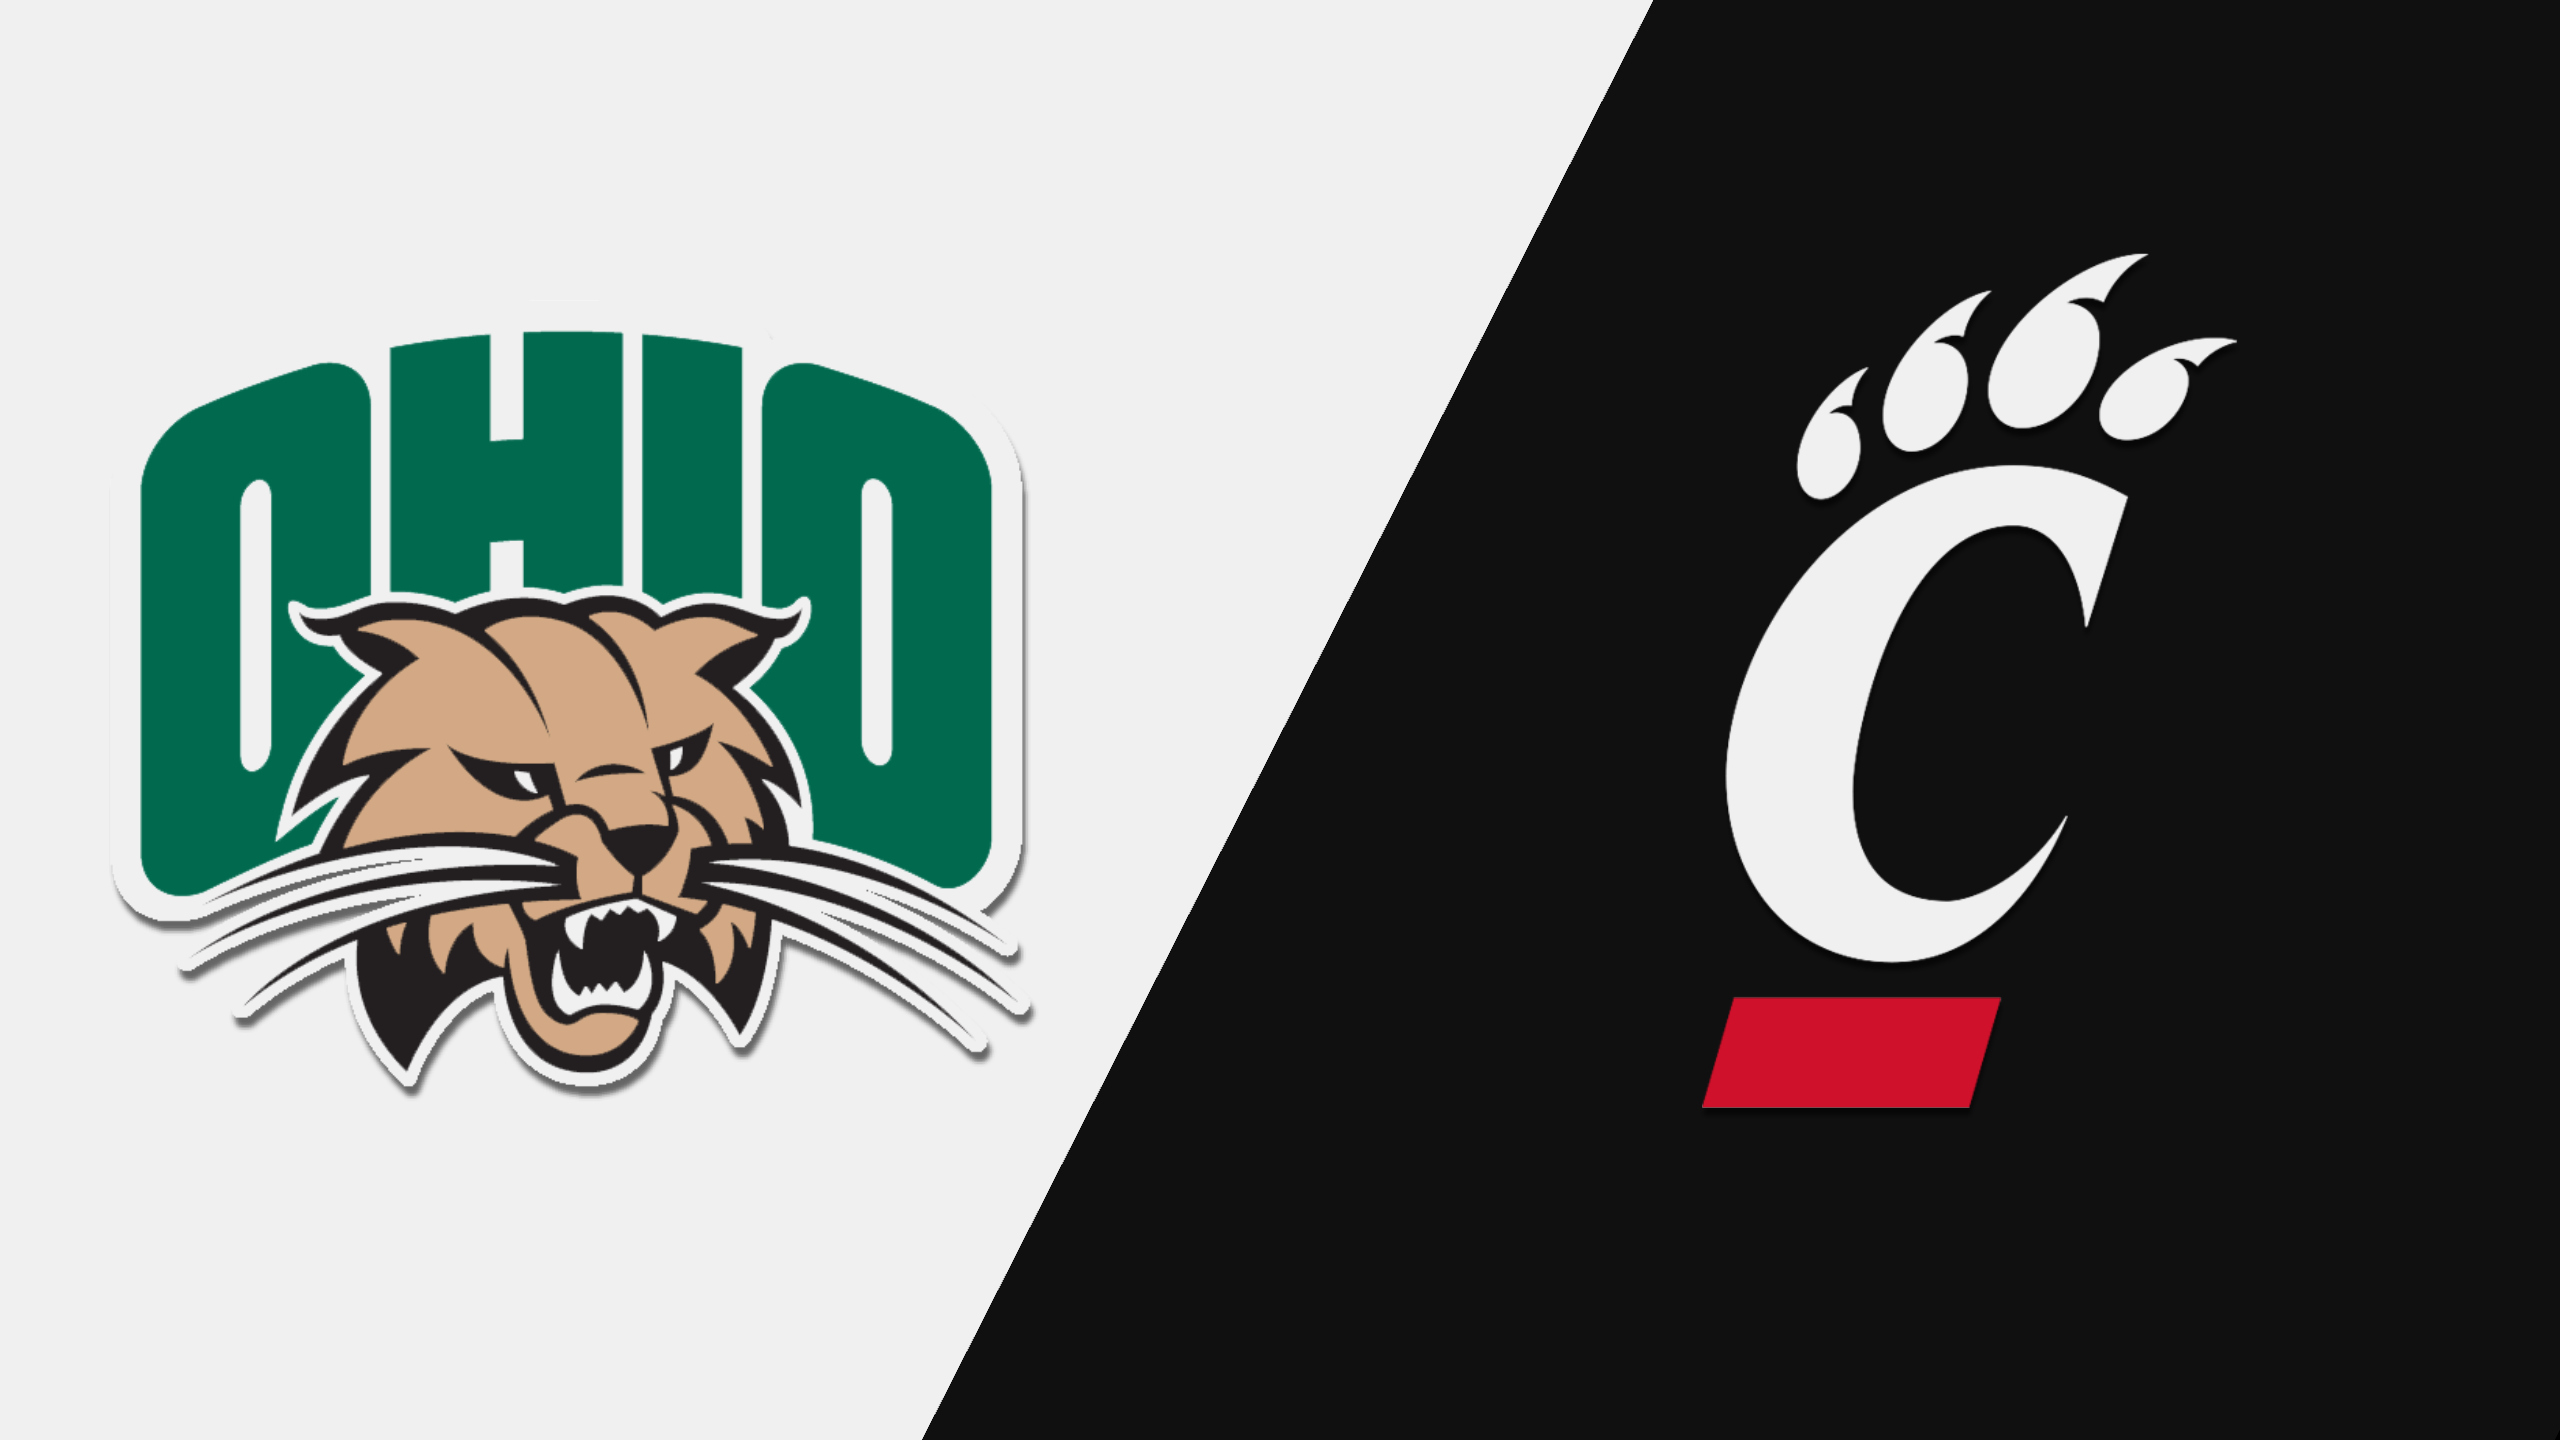 Ohio vs. Cincinnati (Football)